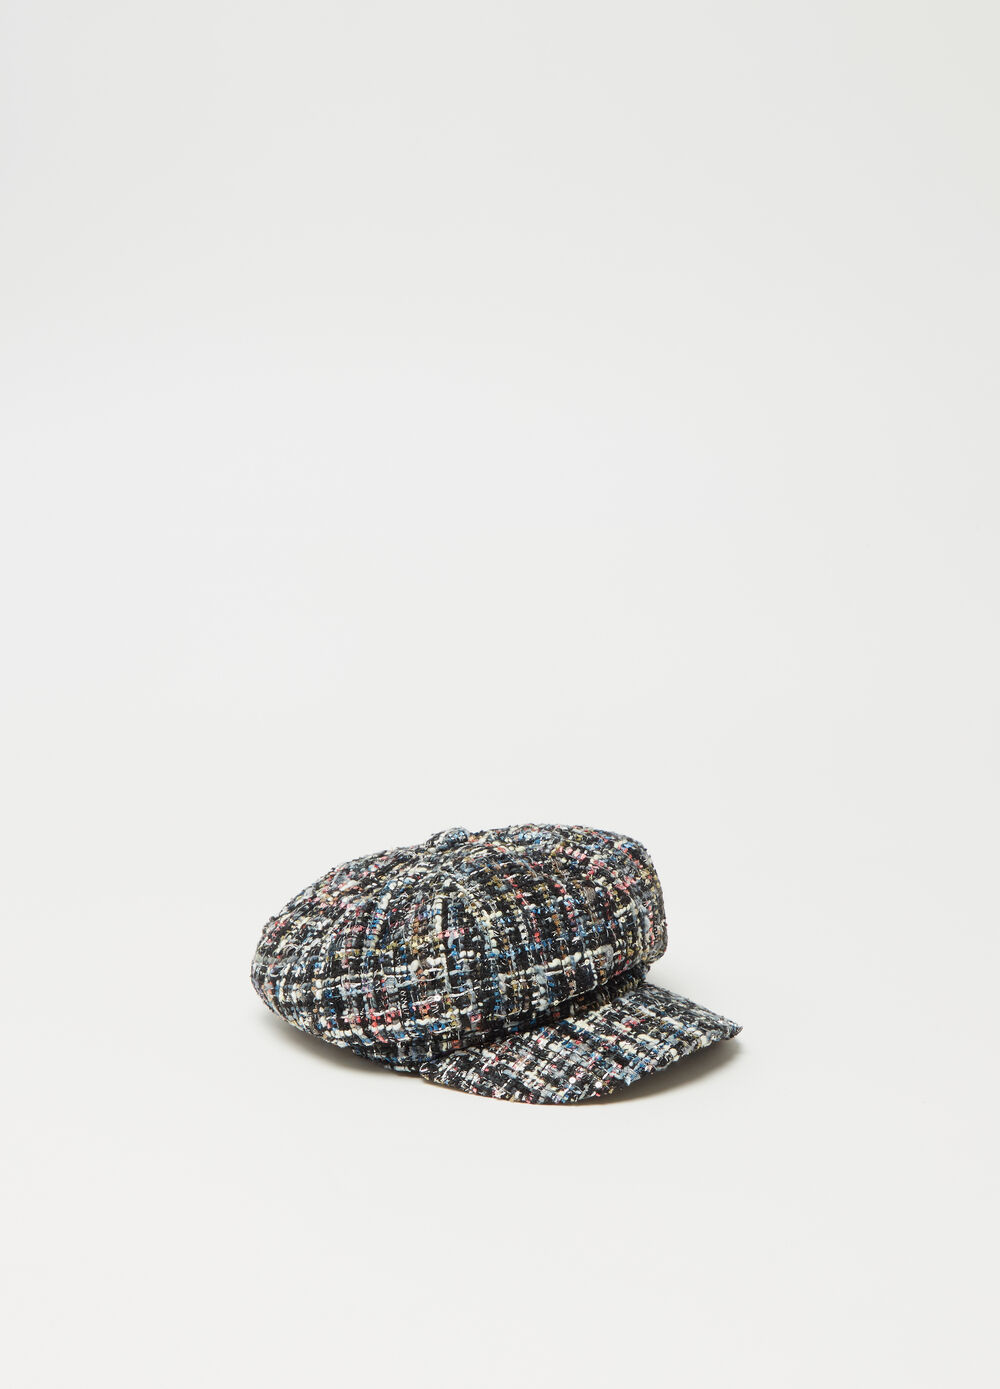 Multicoloured tweed baker boy hat with pattern